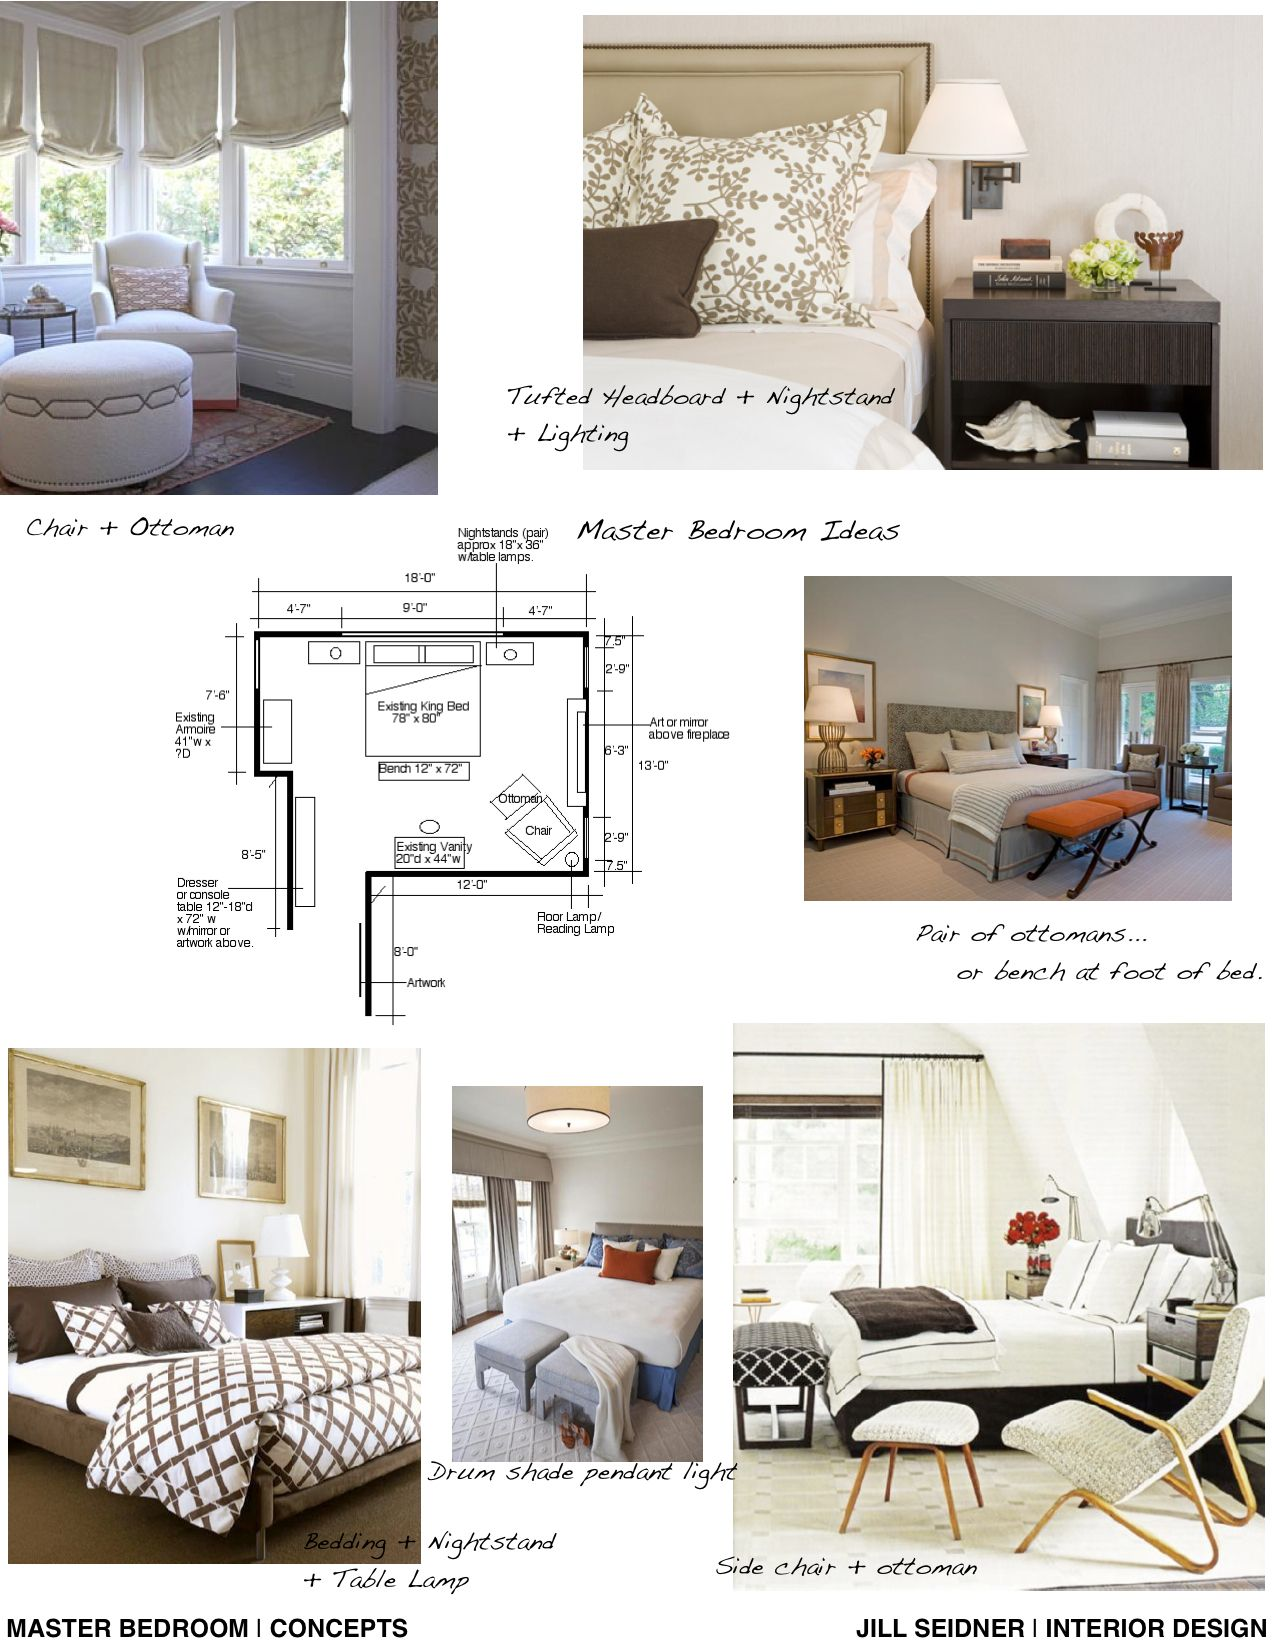 Concept Board And Furniture Layout For A Master Bedroom.